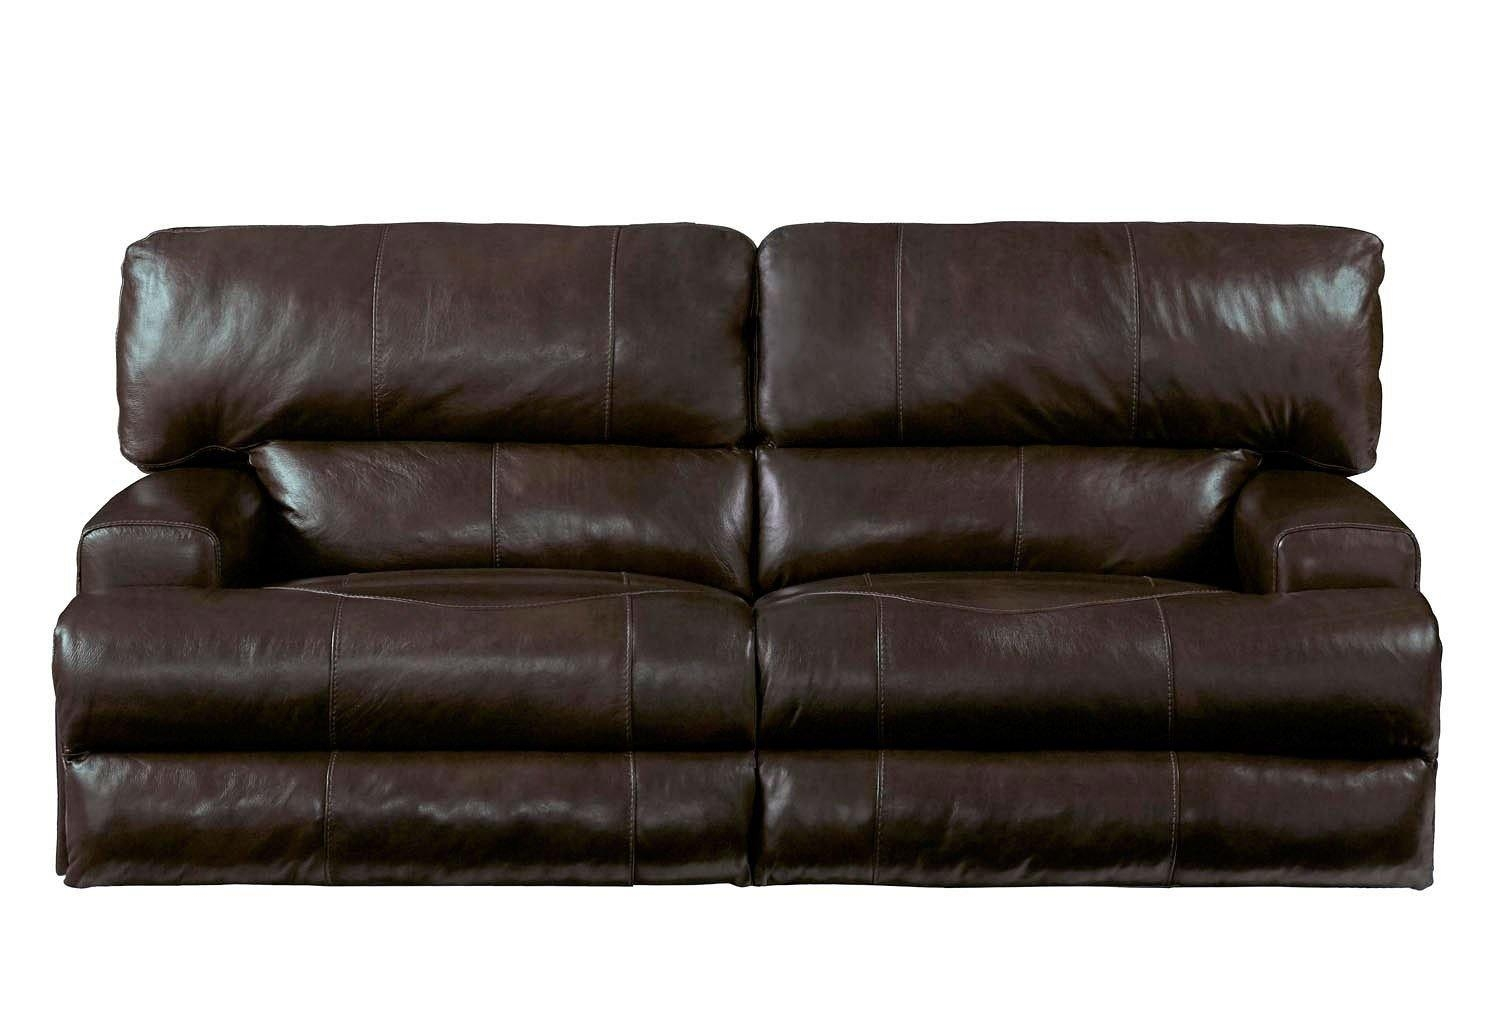 Wembley Lay Flat Reclining Living Room Set (Chocolate) Catnapper Throughout Catnapper Reclining Sofas (View 8 of 20)